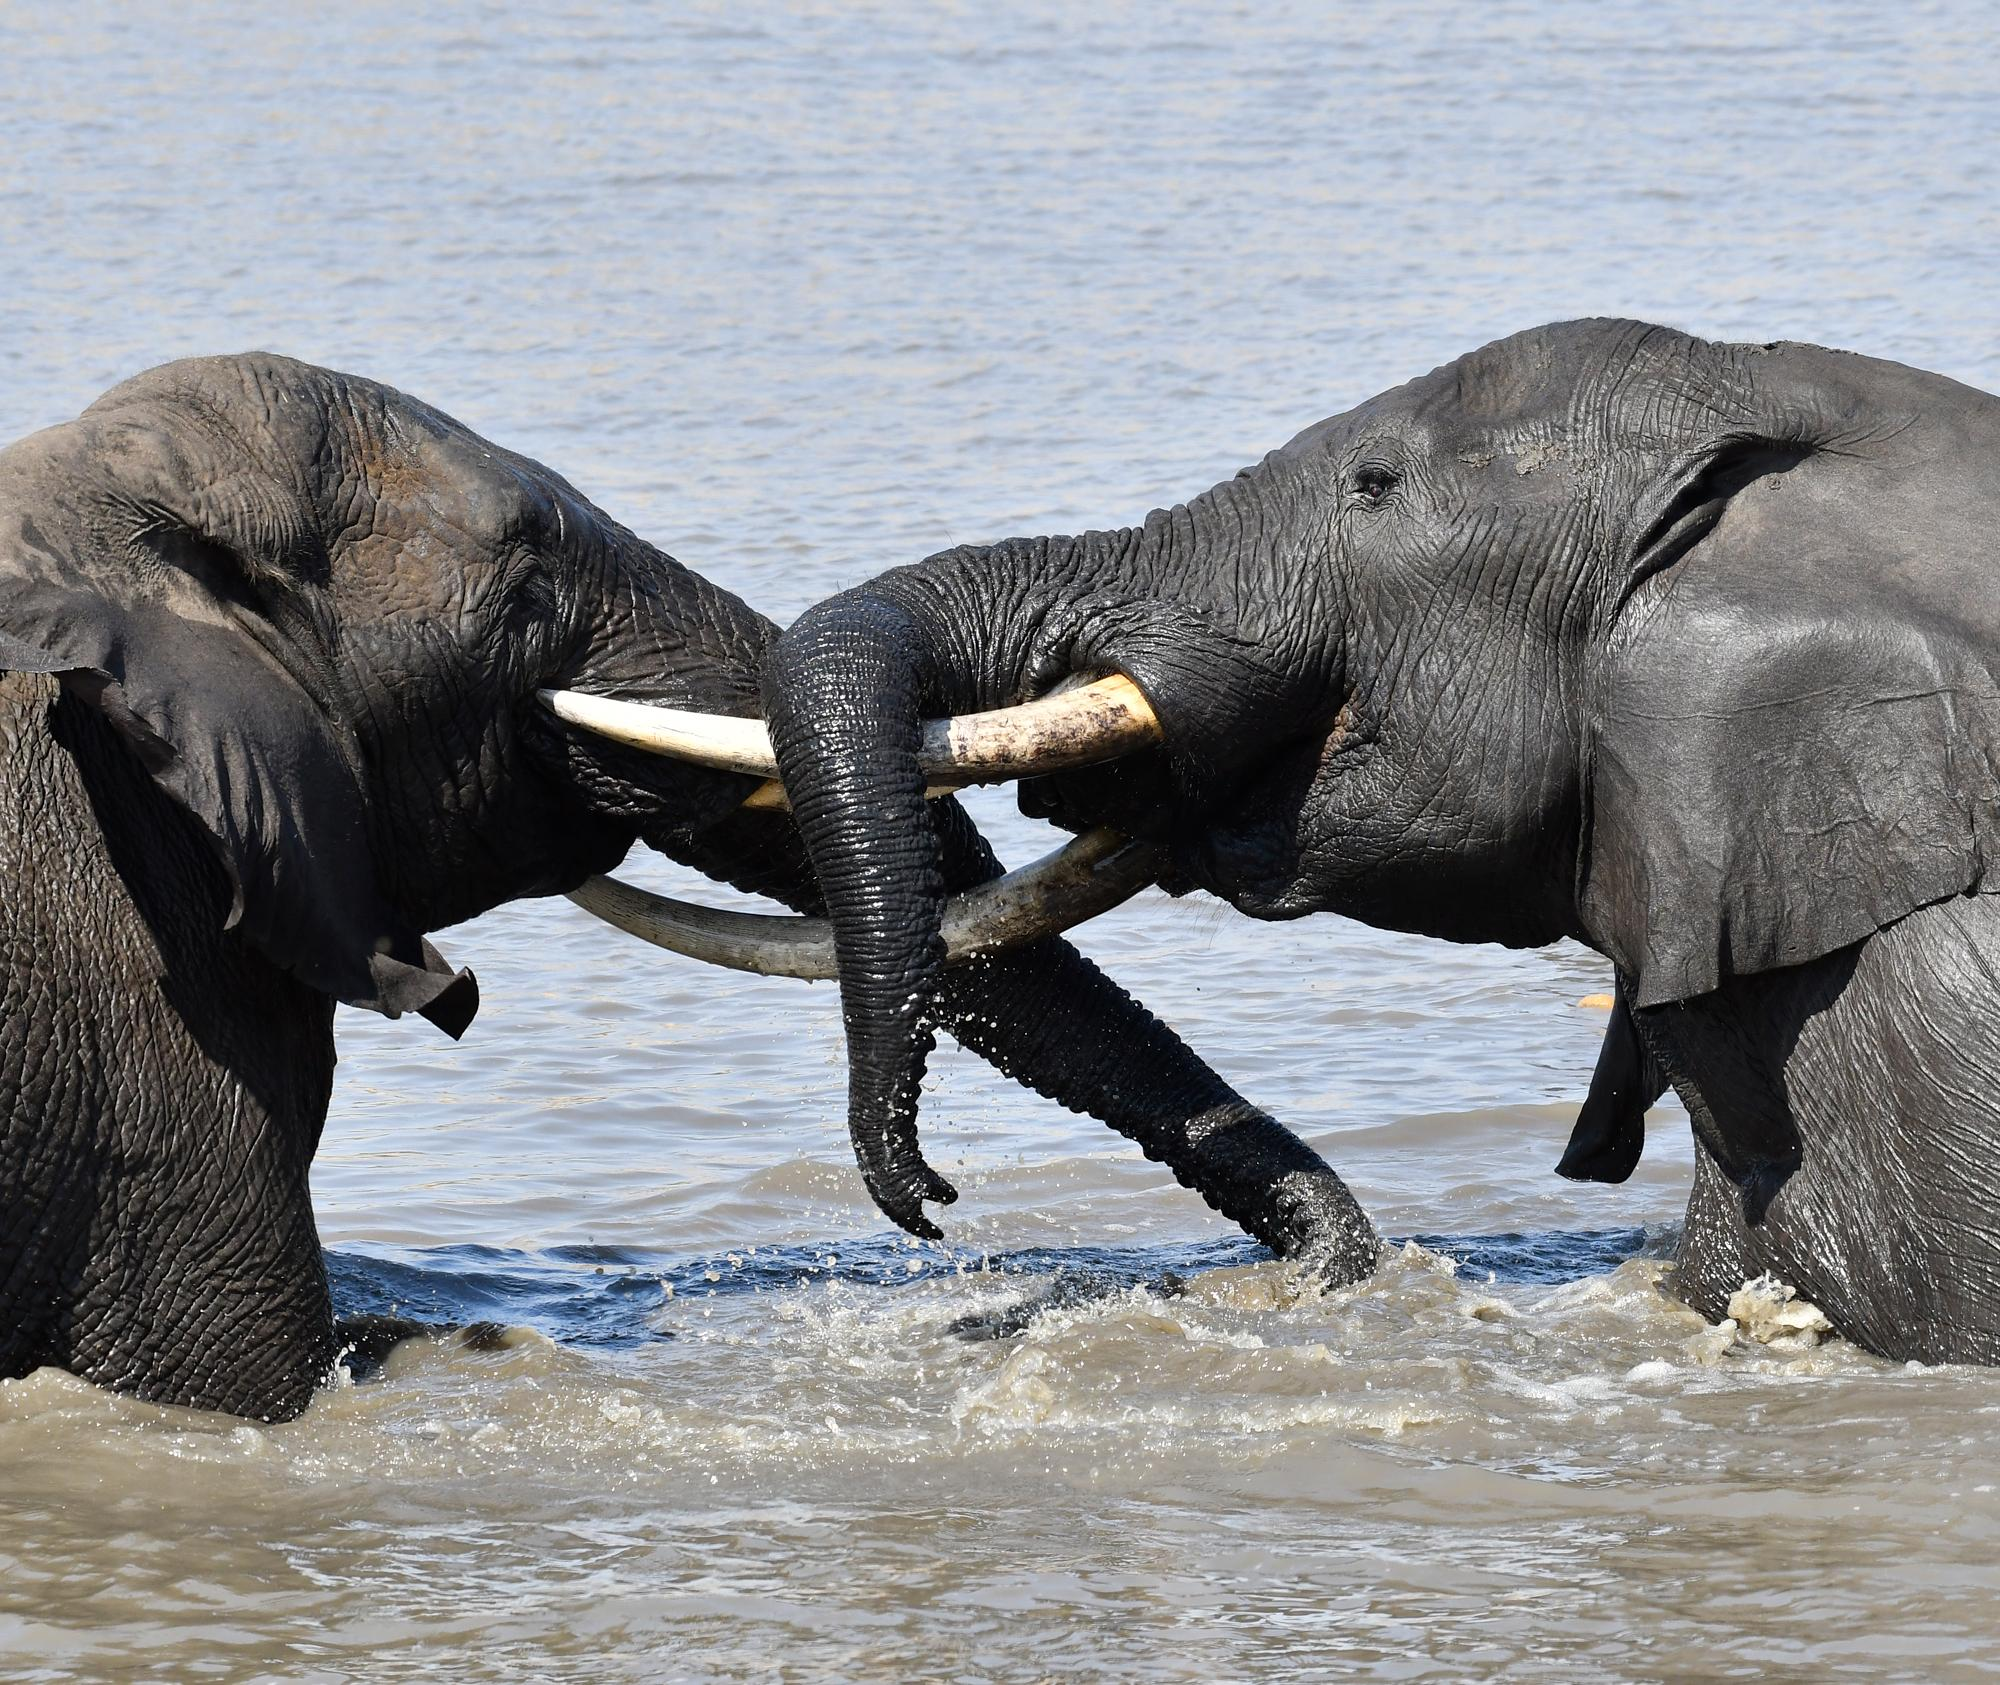 Swimming Elephants, Kruger National Park